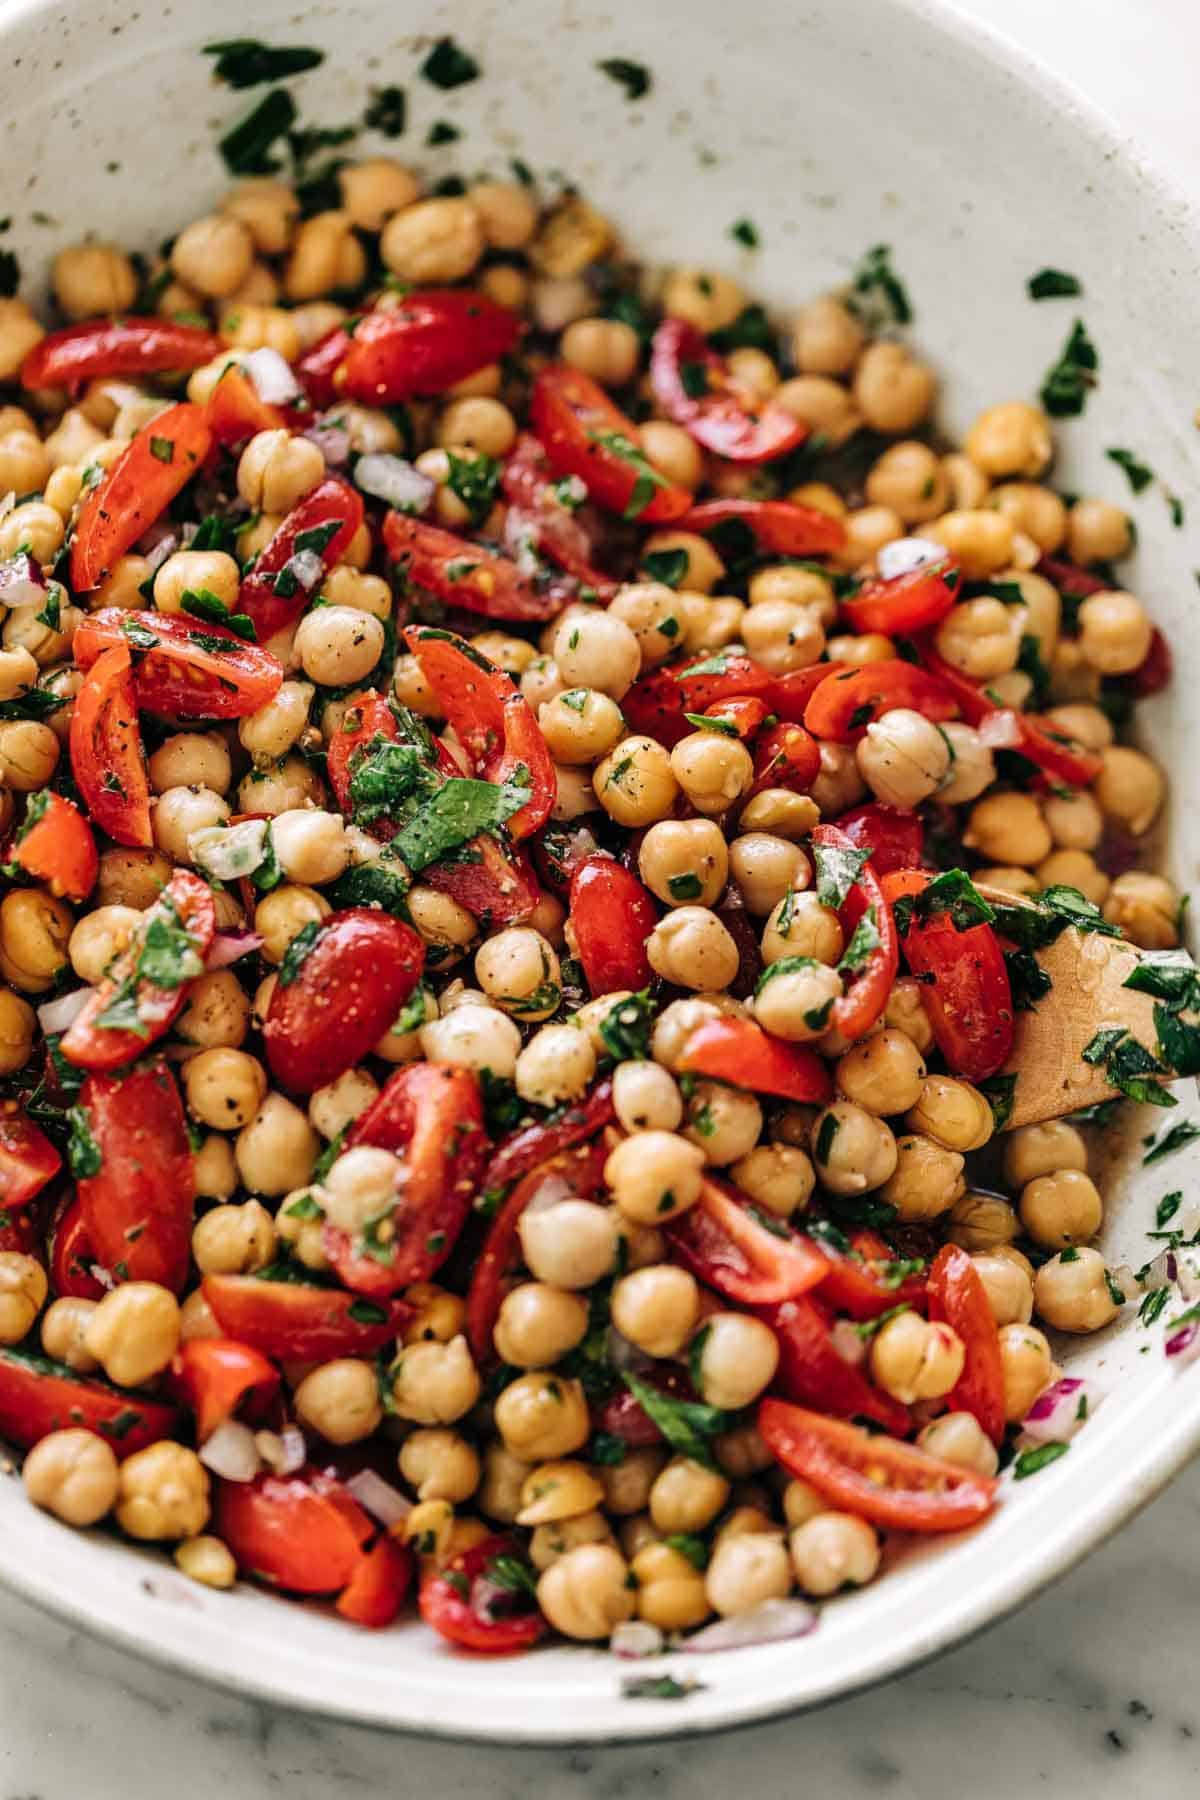 Chickpea Tomato Salad mixed with a lemon herb dressing in a white bowl on a white marble table background | cafedelites